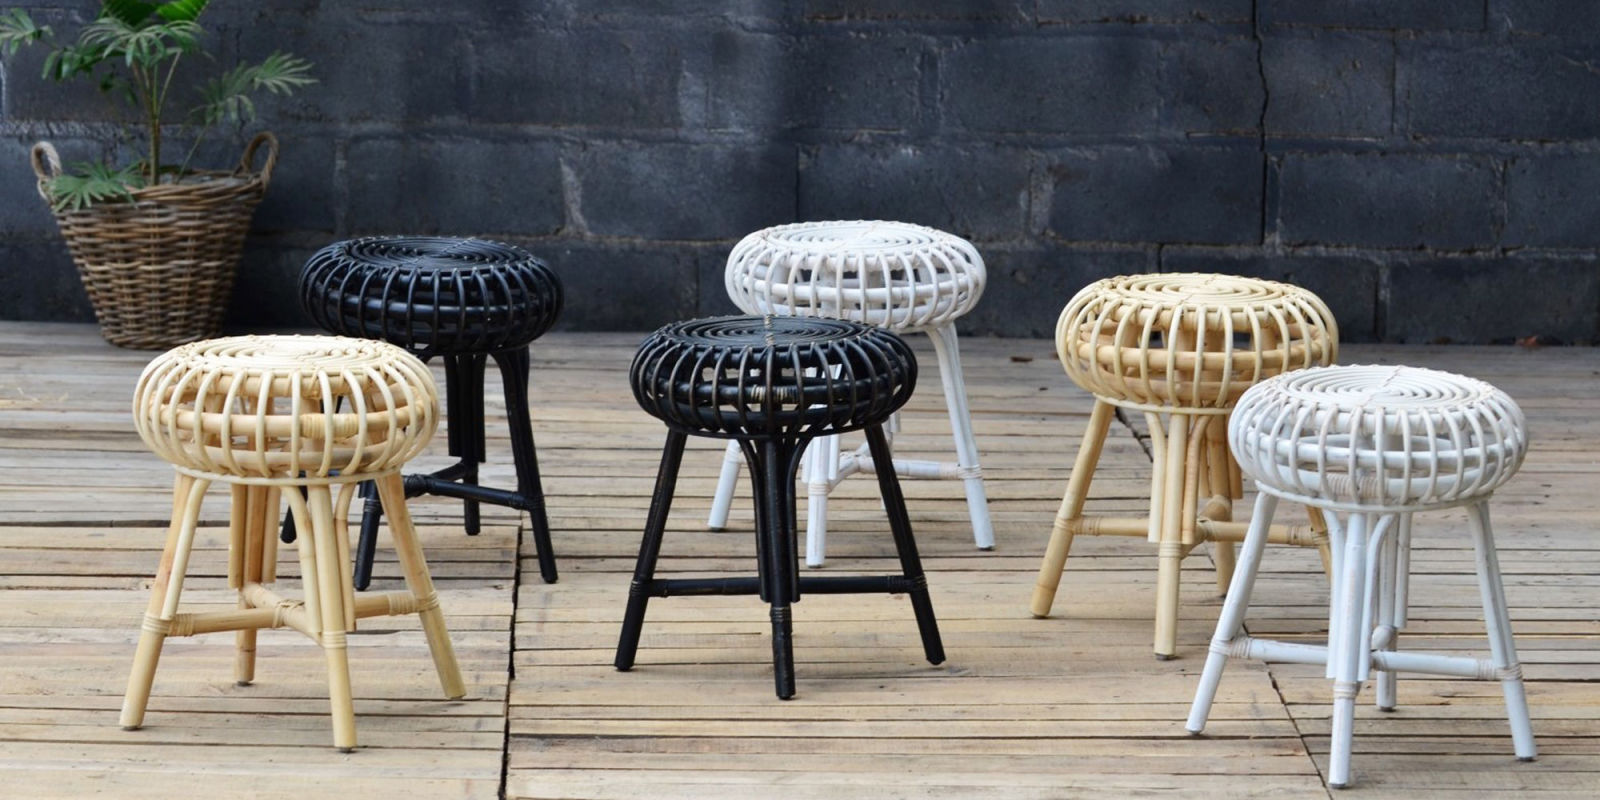 Garden Furniture Jakarta 2017's best rattan garden furniture - rattan and wicker patio